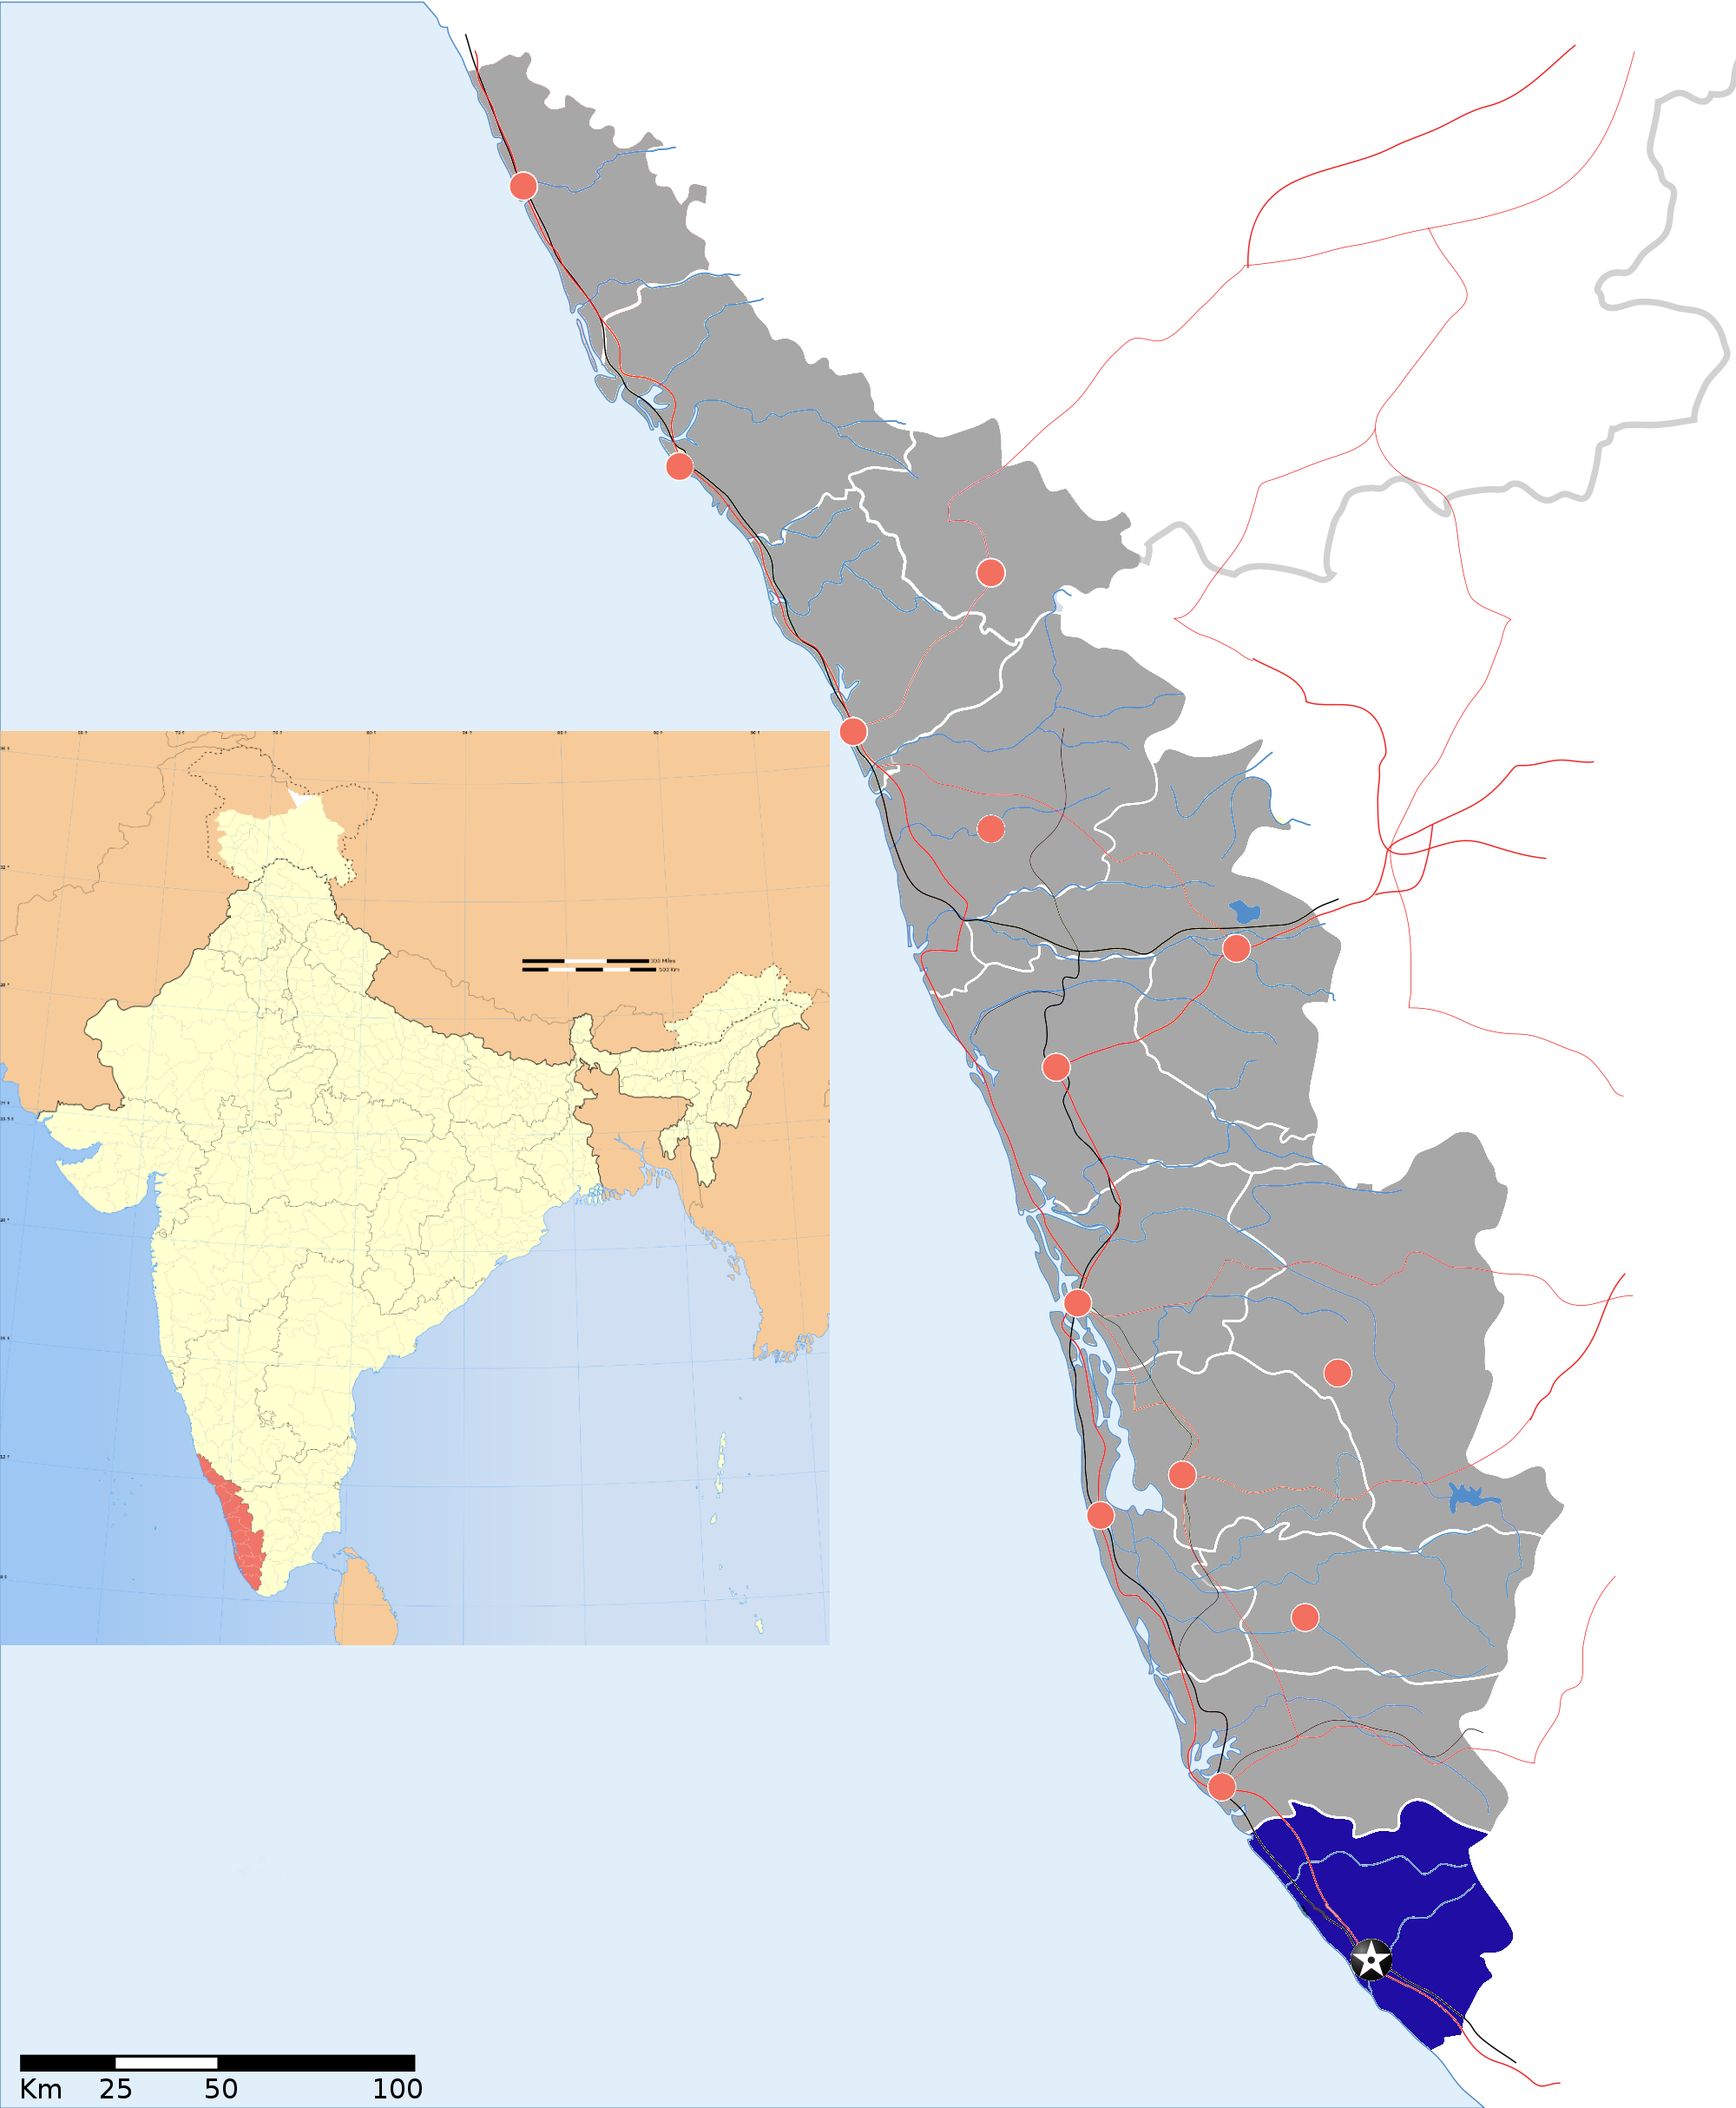 Thiruvananthapuram district - Wikipedia on map of kerala state, map of kerala india, map of india cities, map of sri lanka cities, map of kerala backwaters, map of new york cities, map of punjab cities, map with miles calculation, map of chhattisgarh cities,